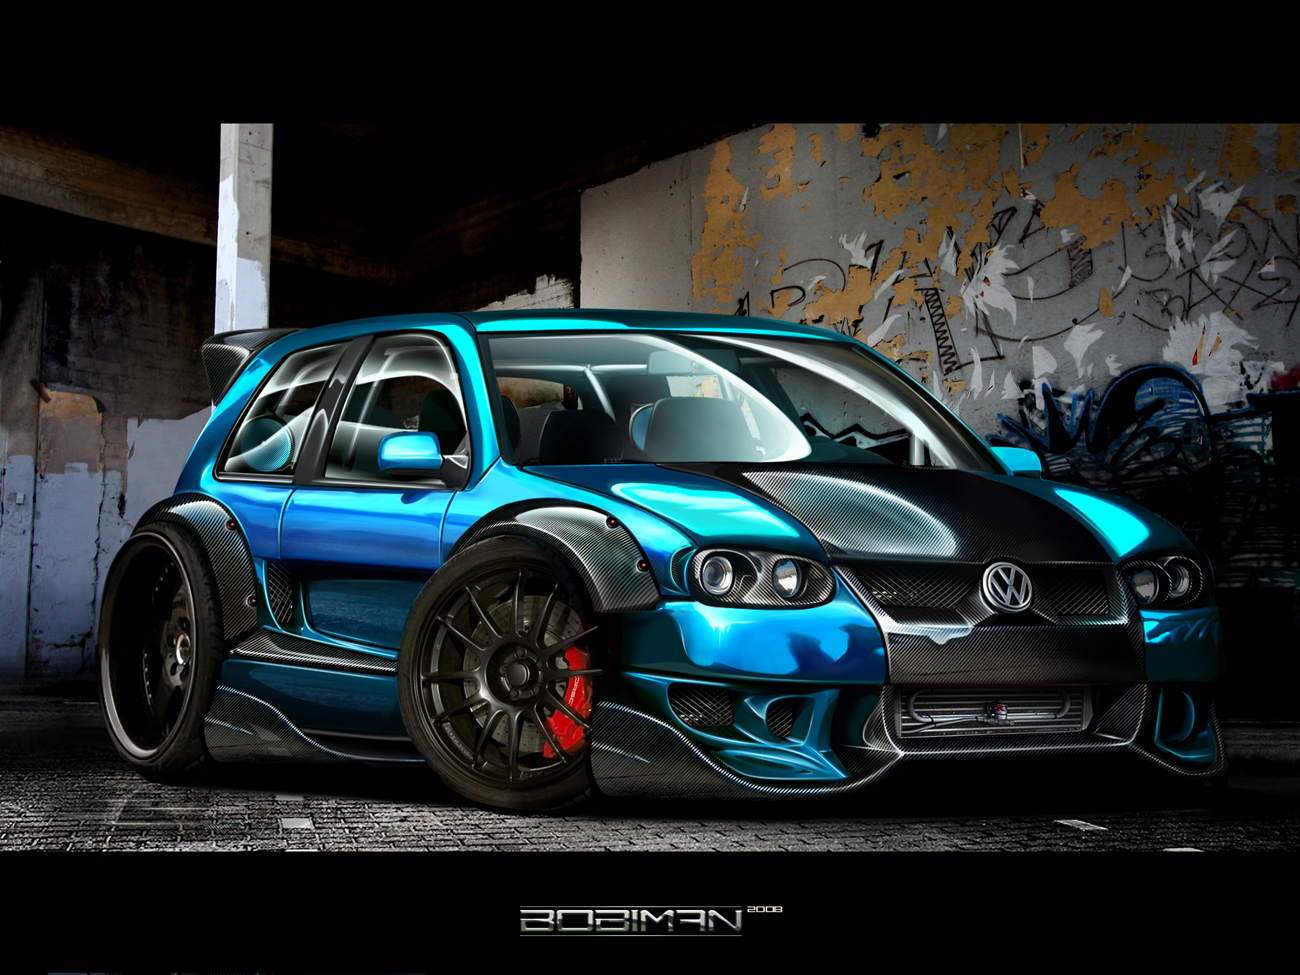 Fast Cars Wallpapers World Of Cars 1300x975